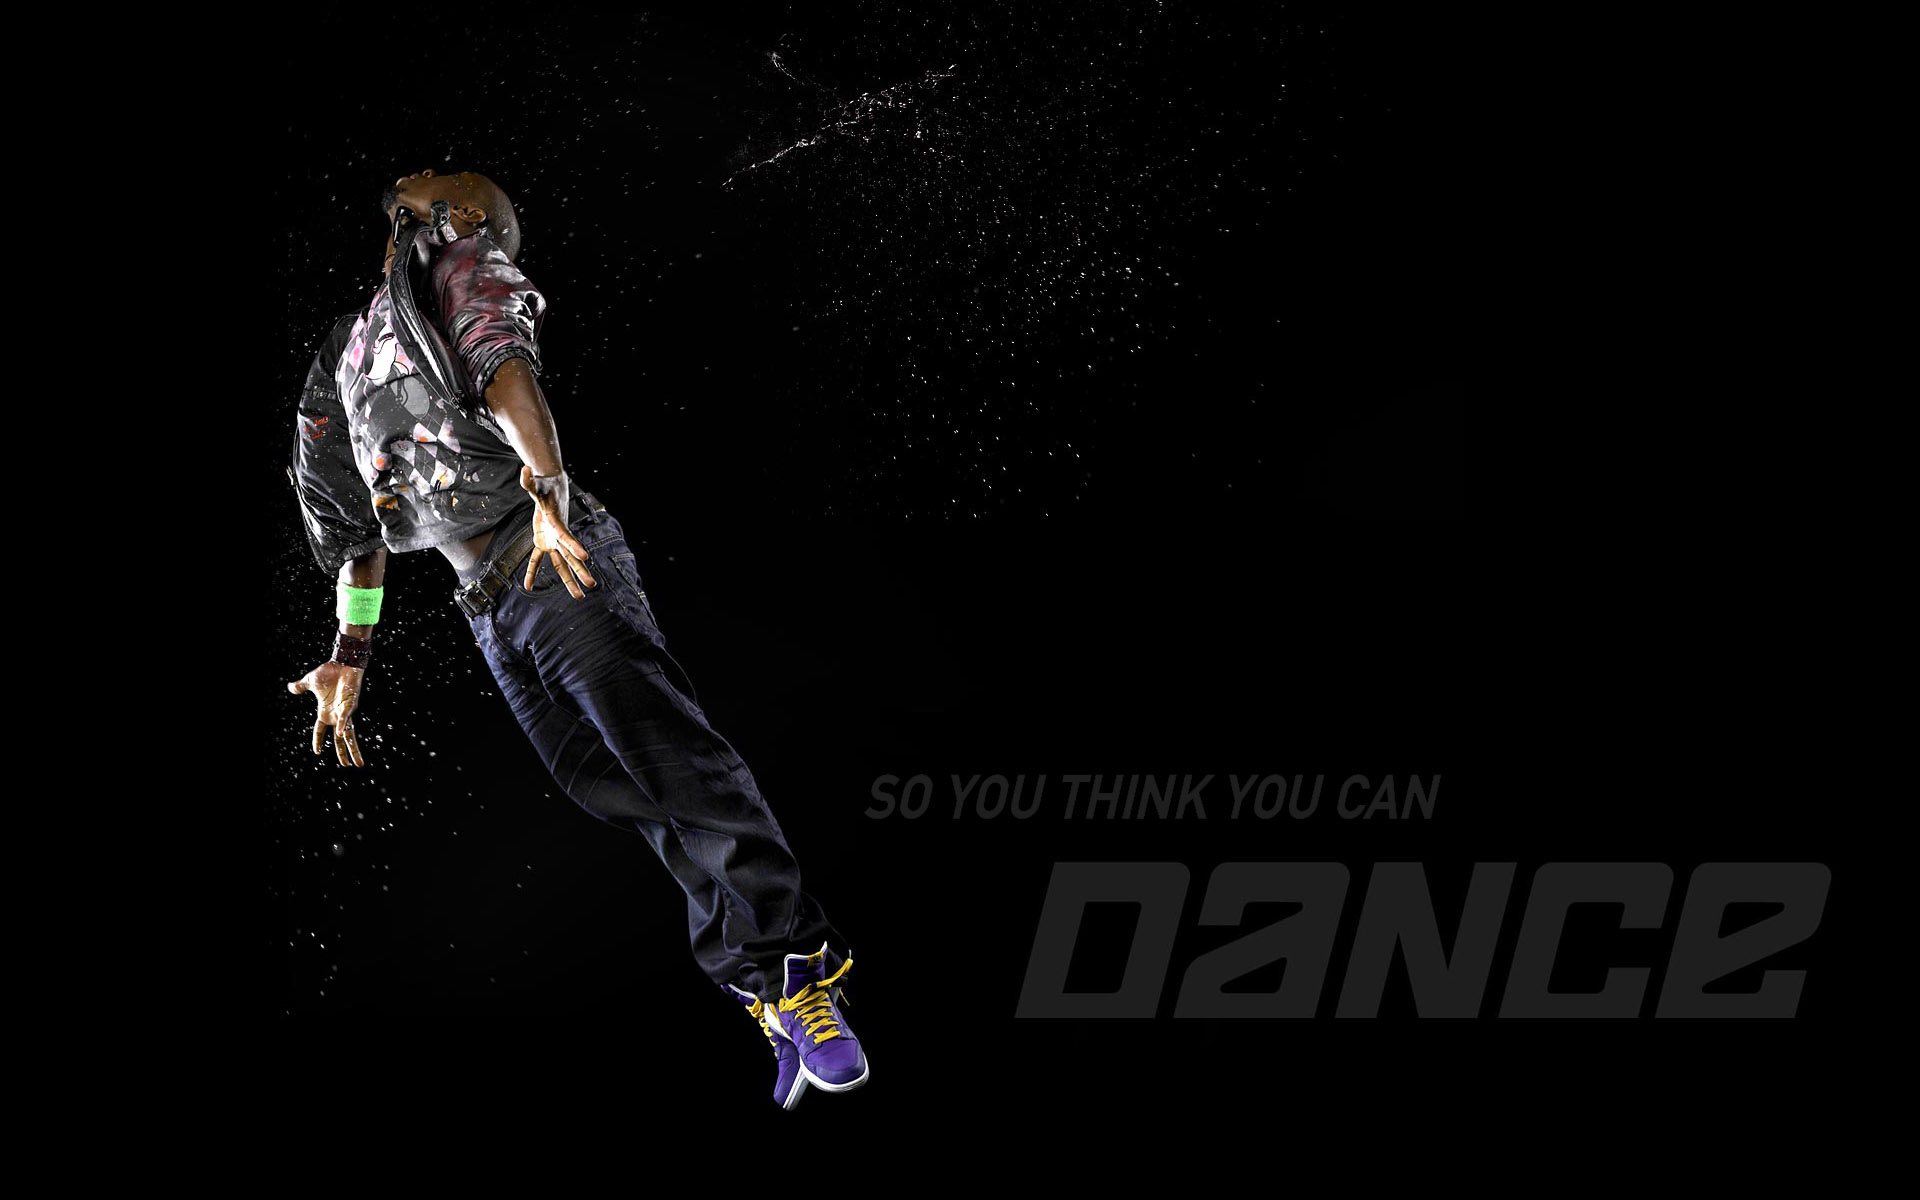 Dance Laptop Wallpapers: So You Think You Can Dance Wallpapers, Pictures, Images